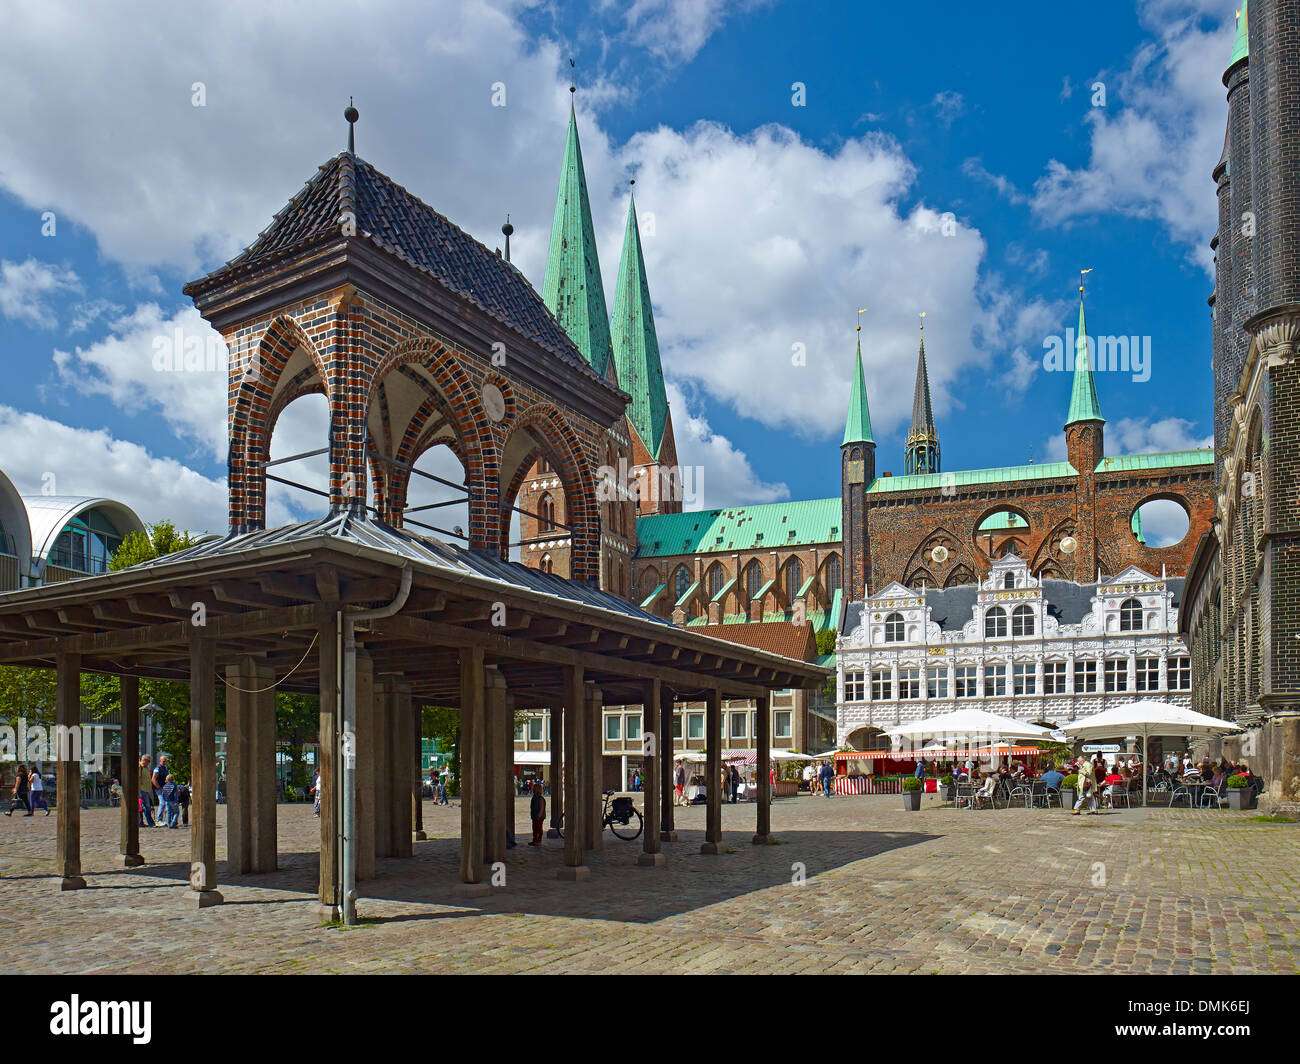 Pillory with City Hall at market square, Hanseatic City of Lübeck, Schleswig-Holstein, Germany - Stock Image